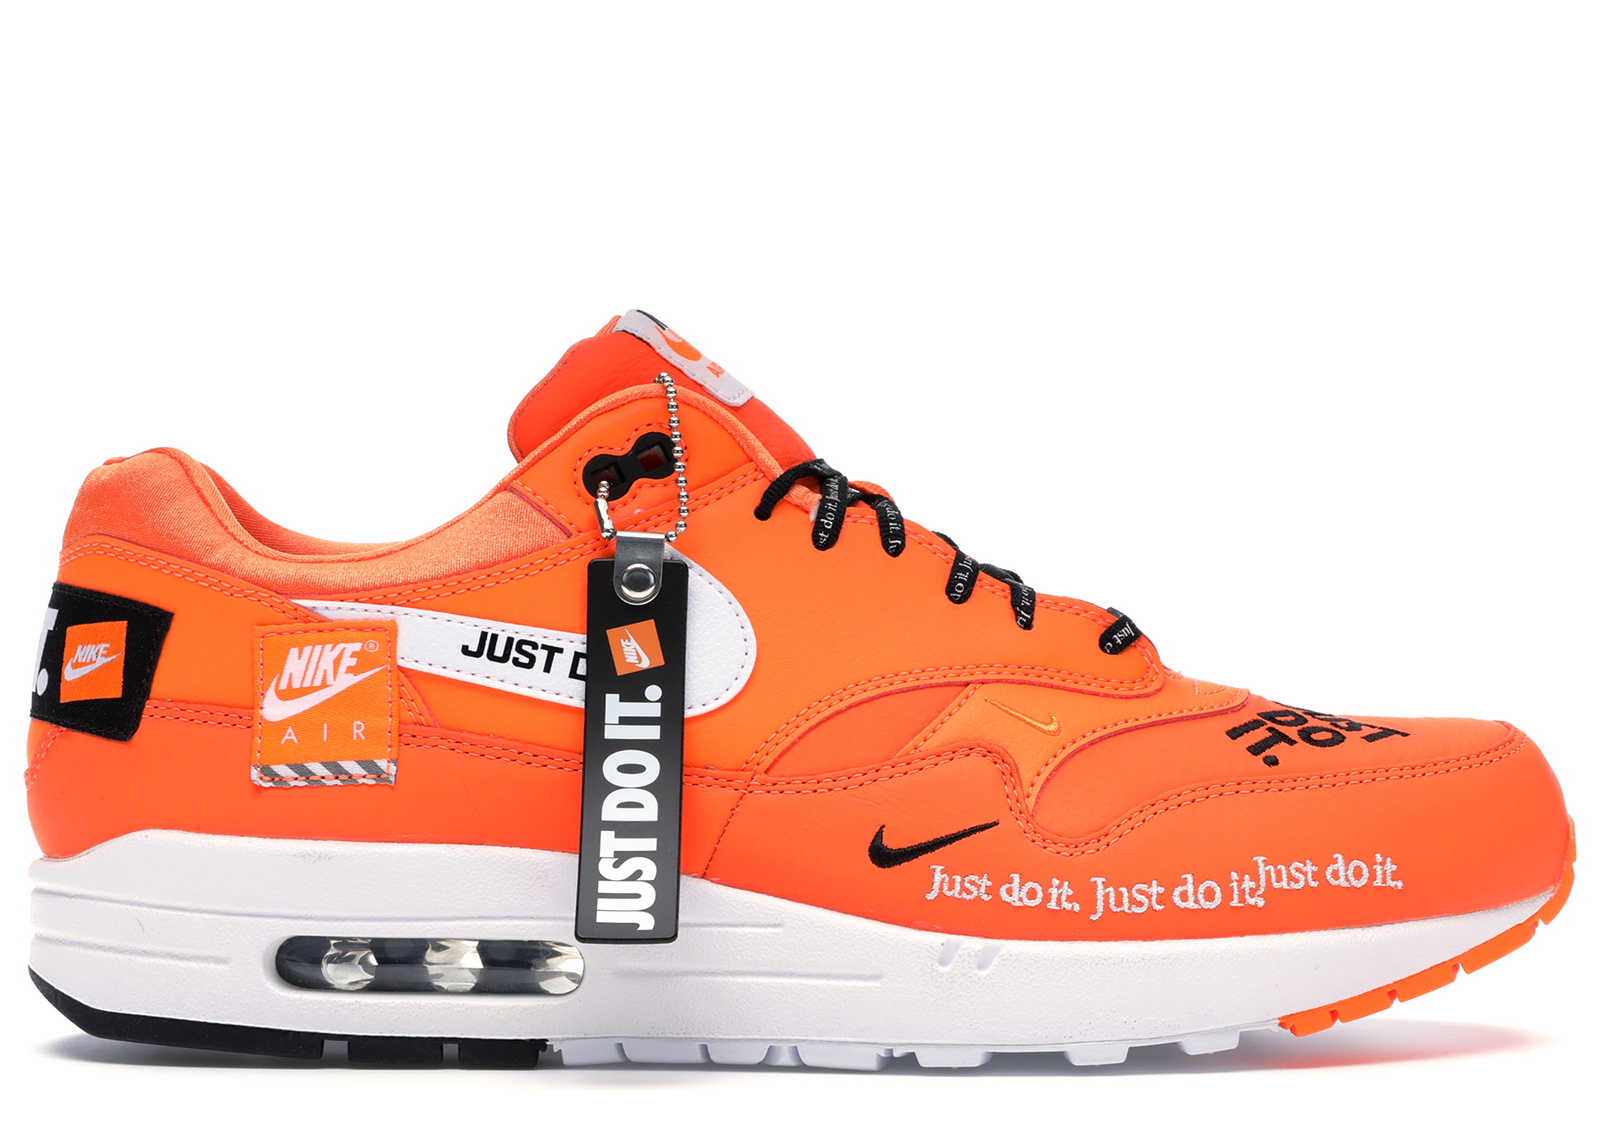 1 Orange Just Max Do It Air Pack qSUVpMGz